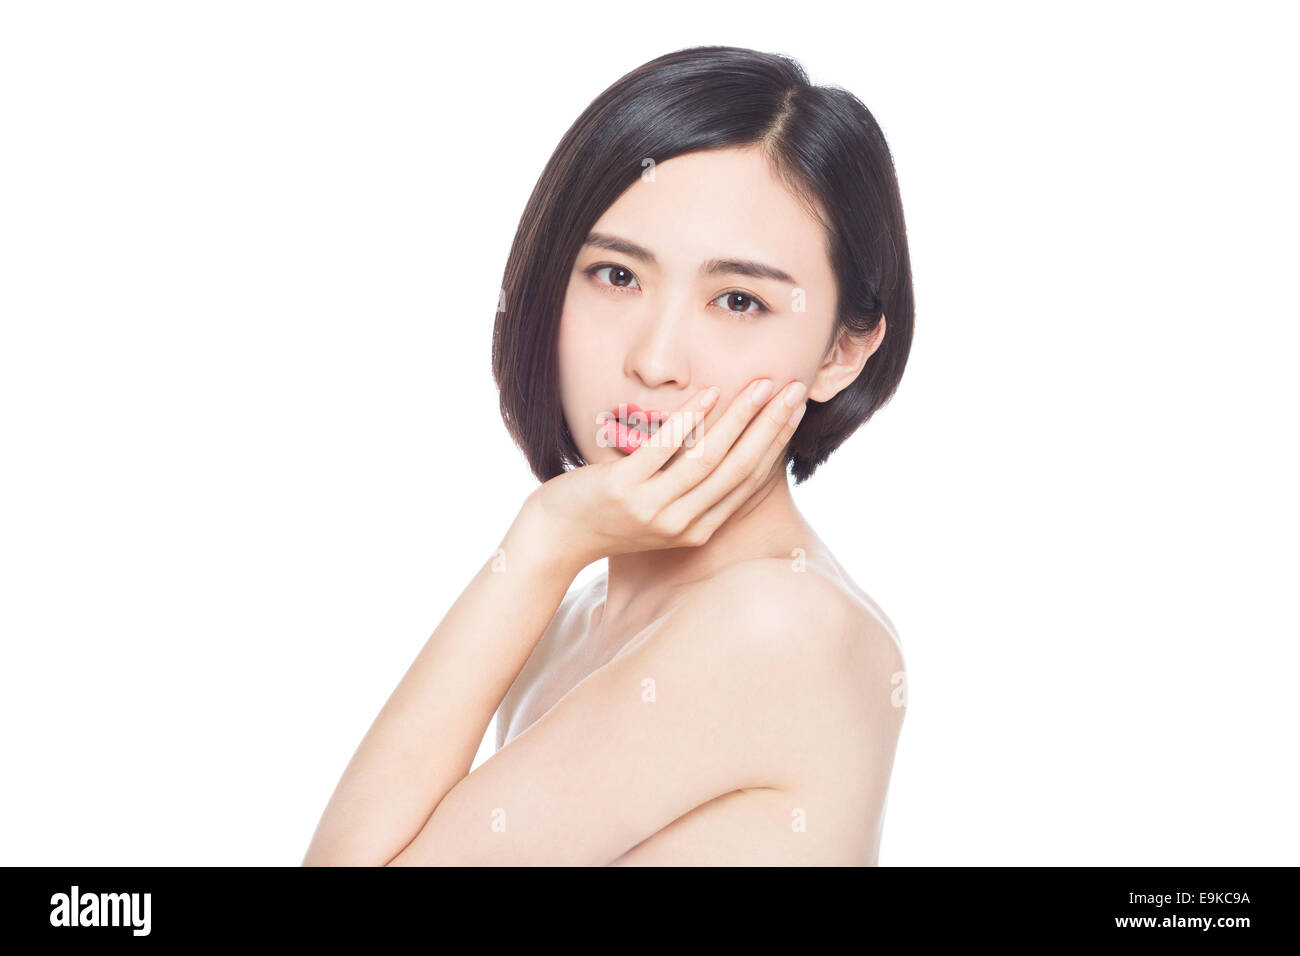 chinese woman facial expressions, white background - Stock Image